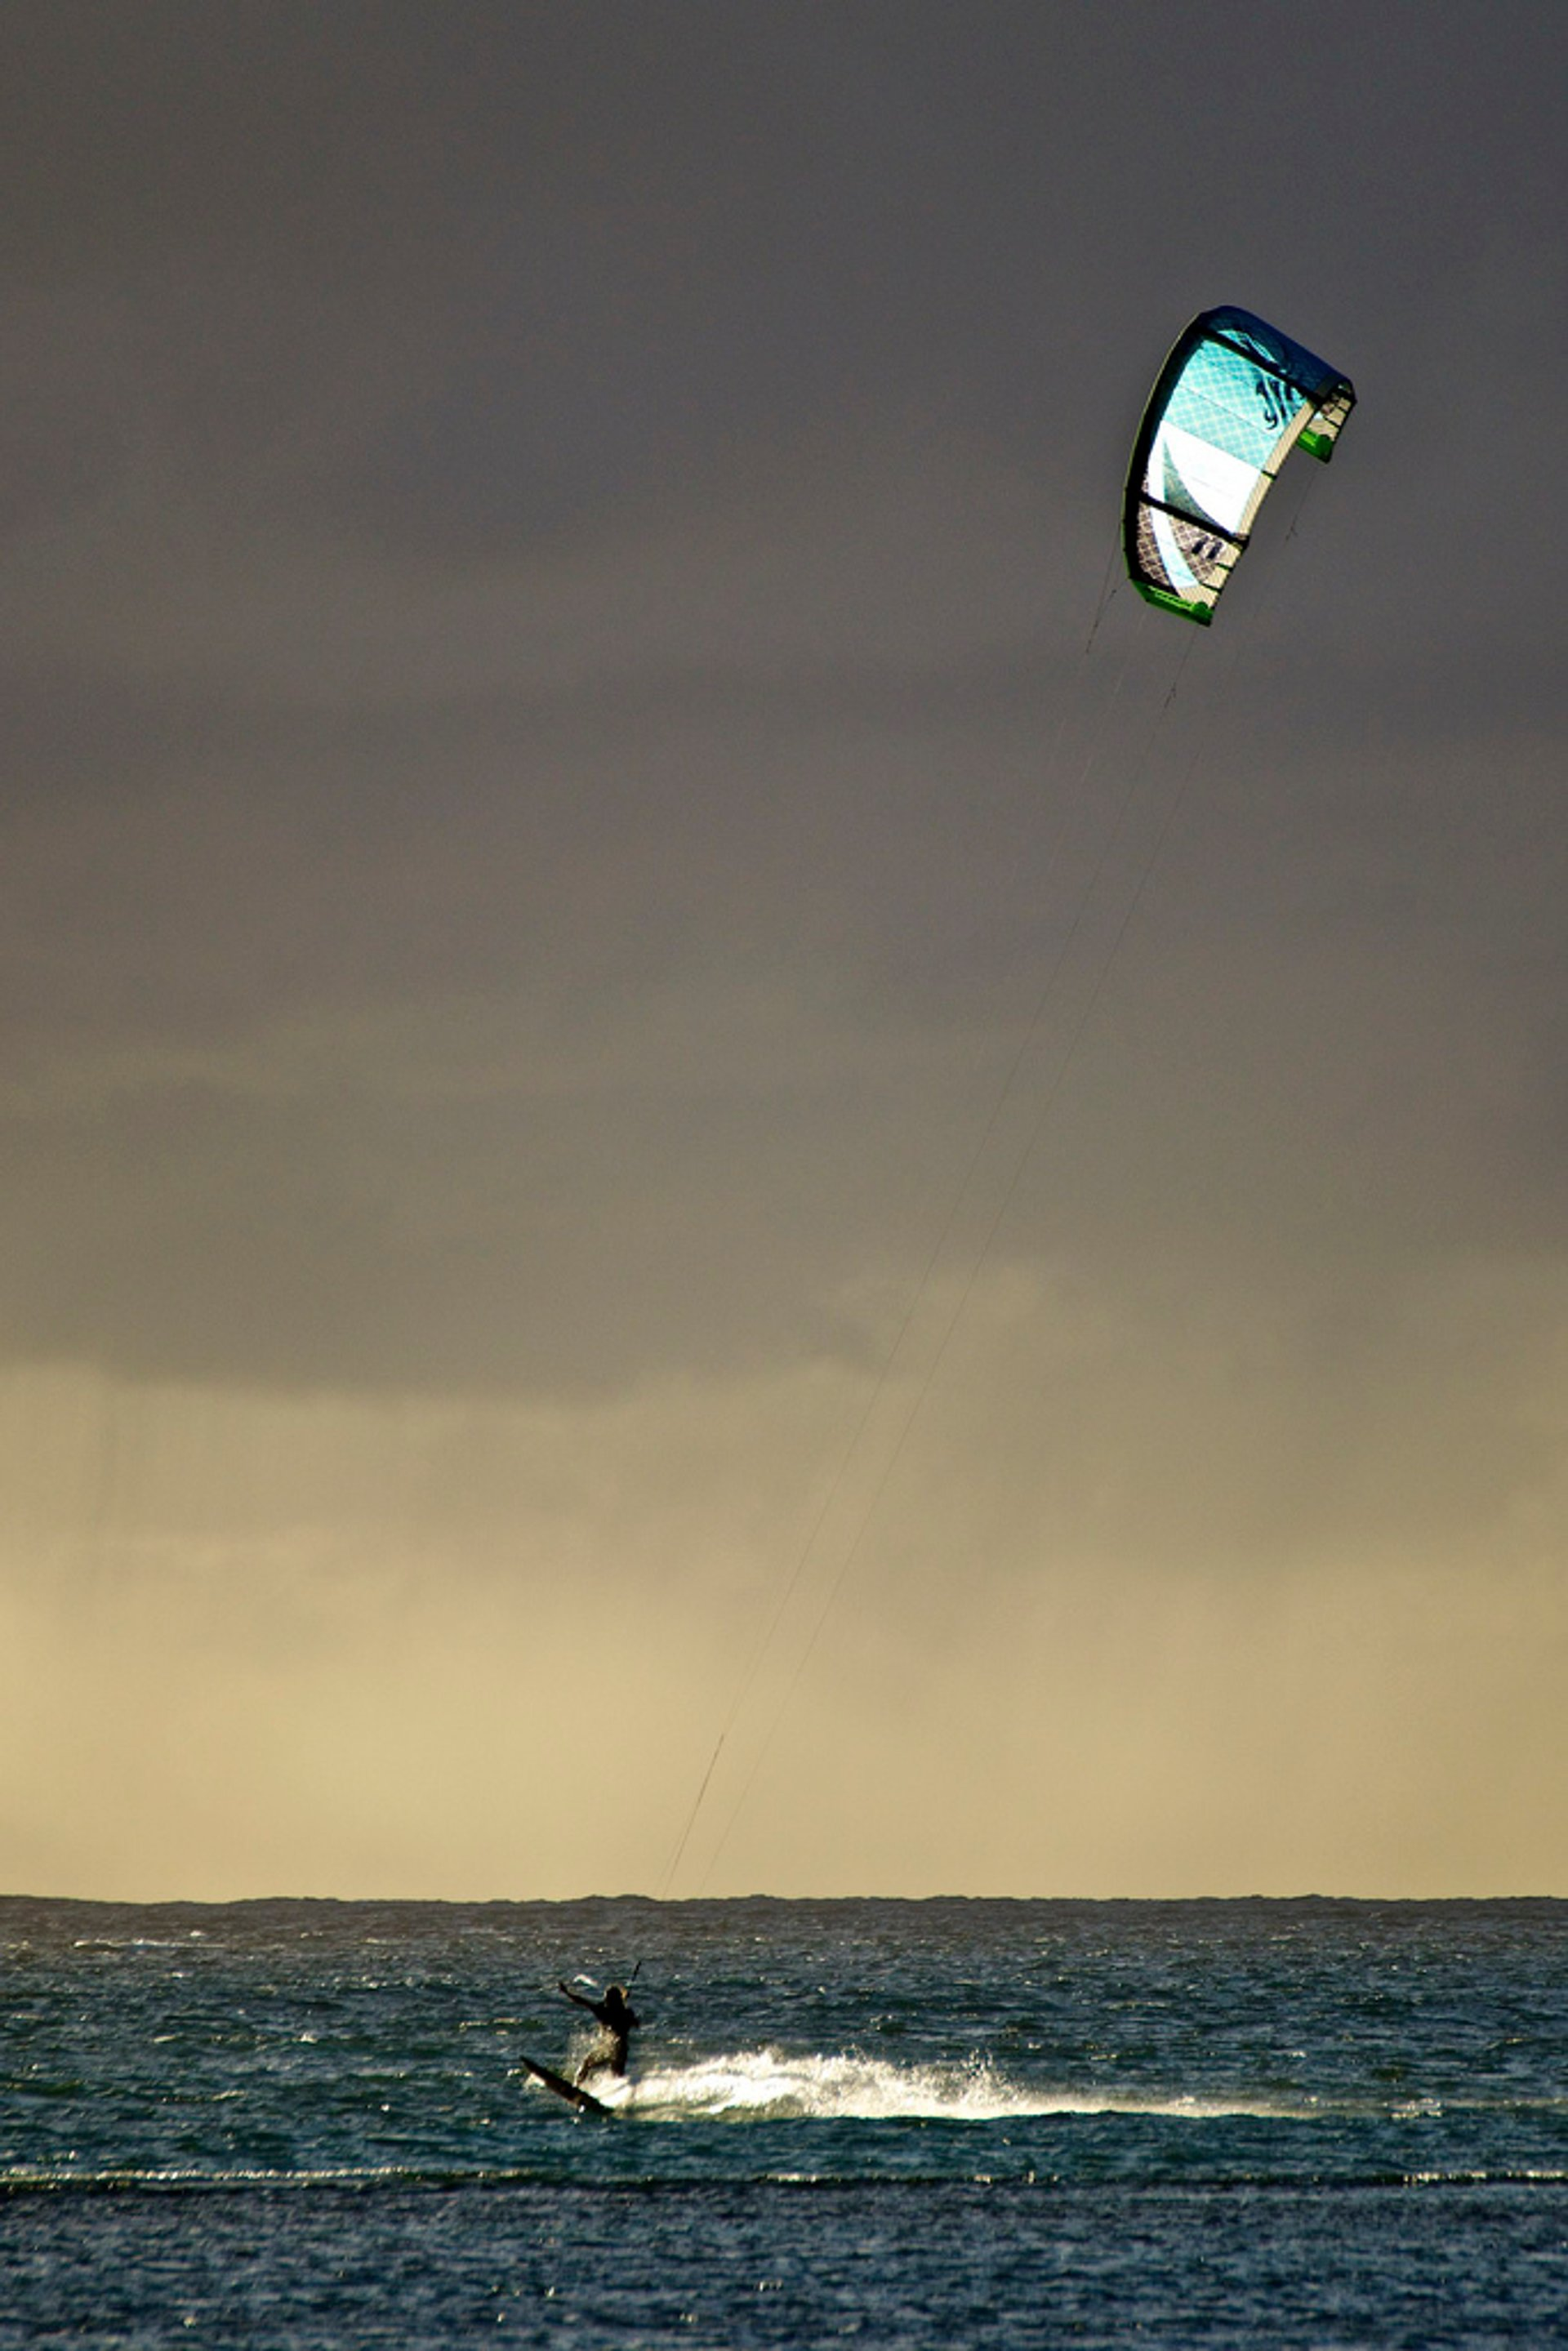 Best time for Kite and Windsurfing in Corsica 2020